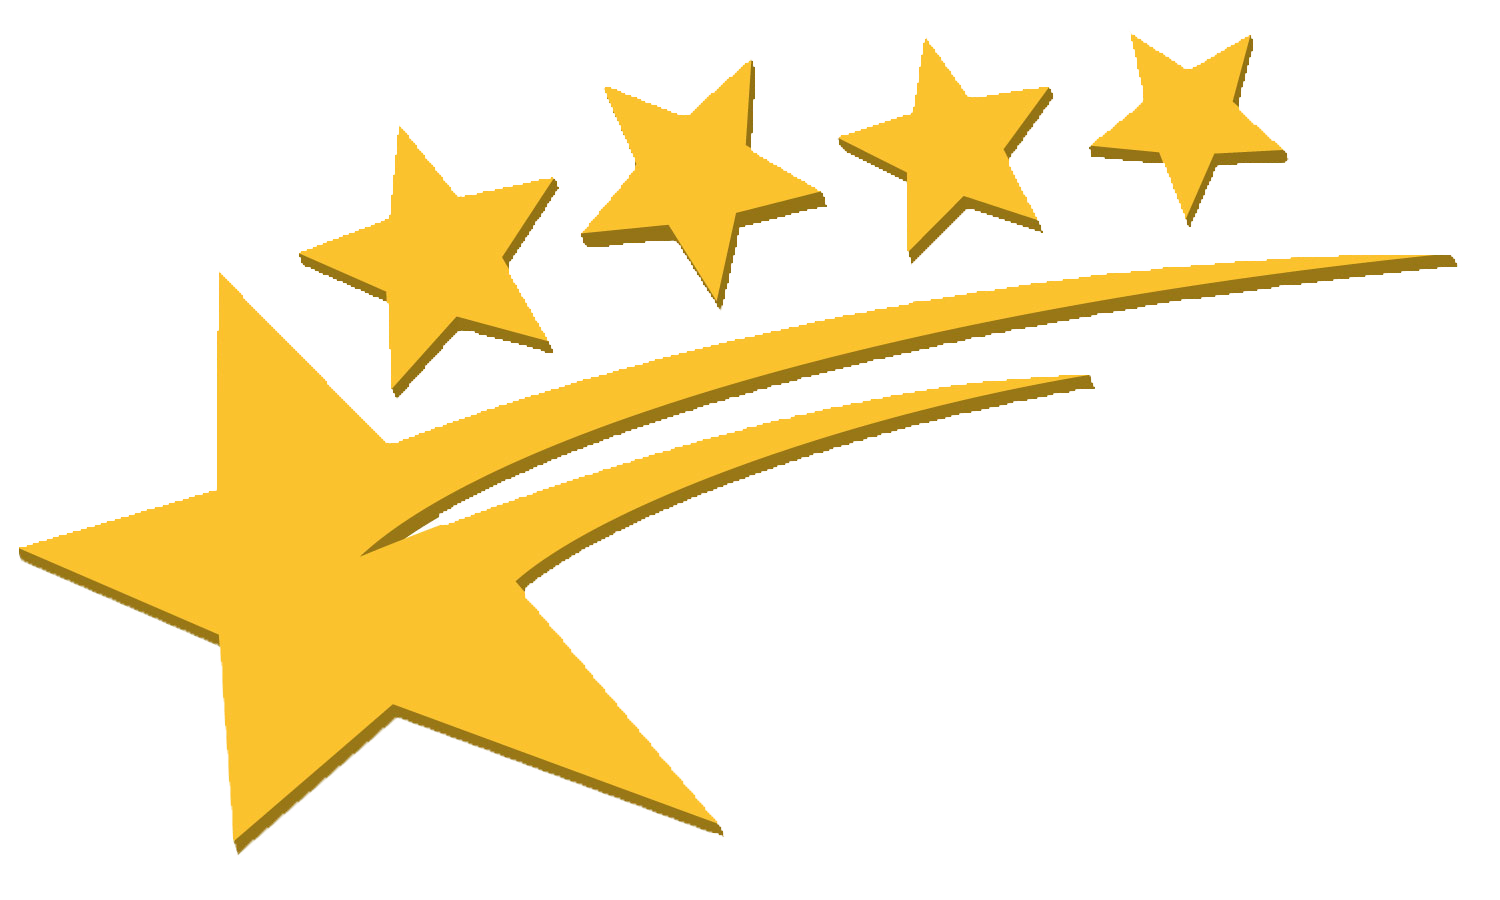 star quality rated. 5 stars png transparent clip art royalty free library